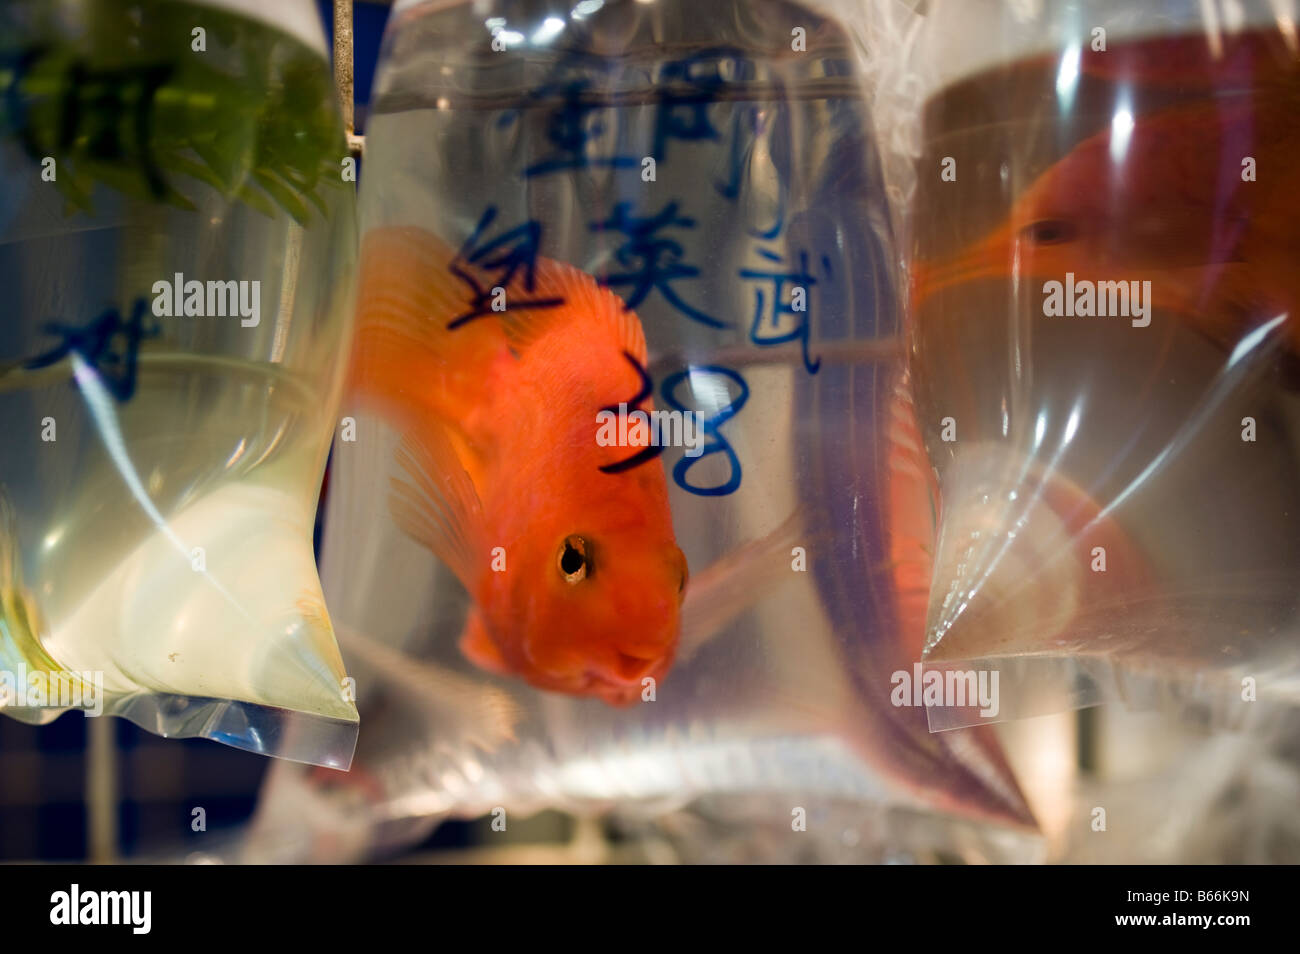 Live Fish Trade Hong Stock Photos & Live Fish Trade Hong Stock ...